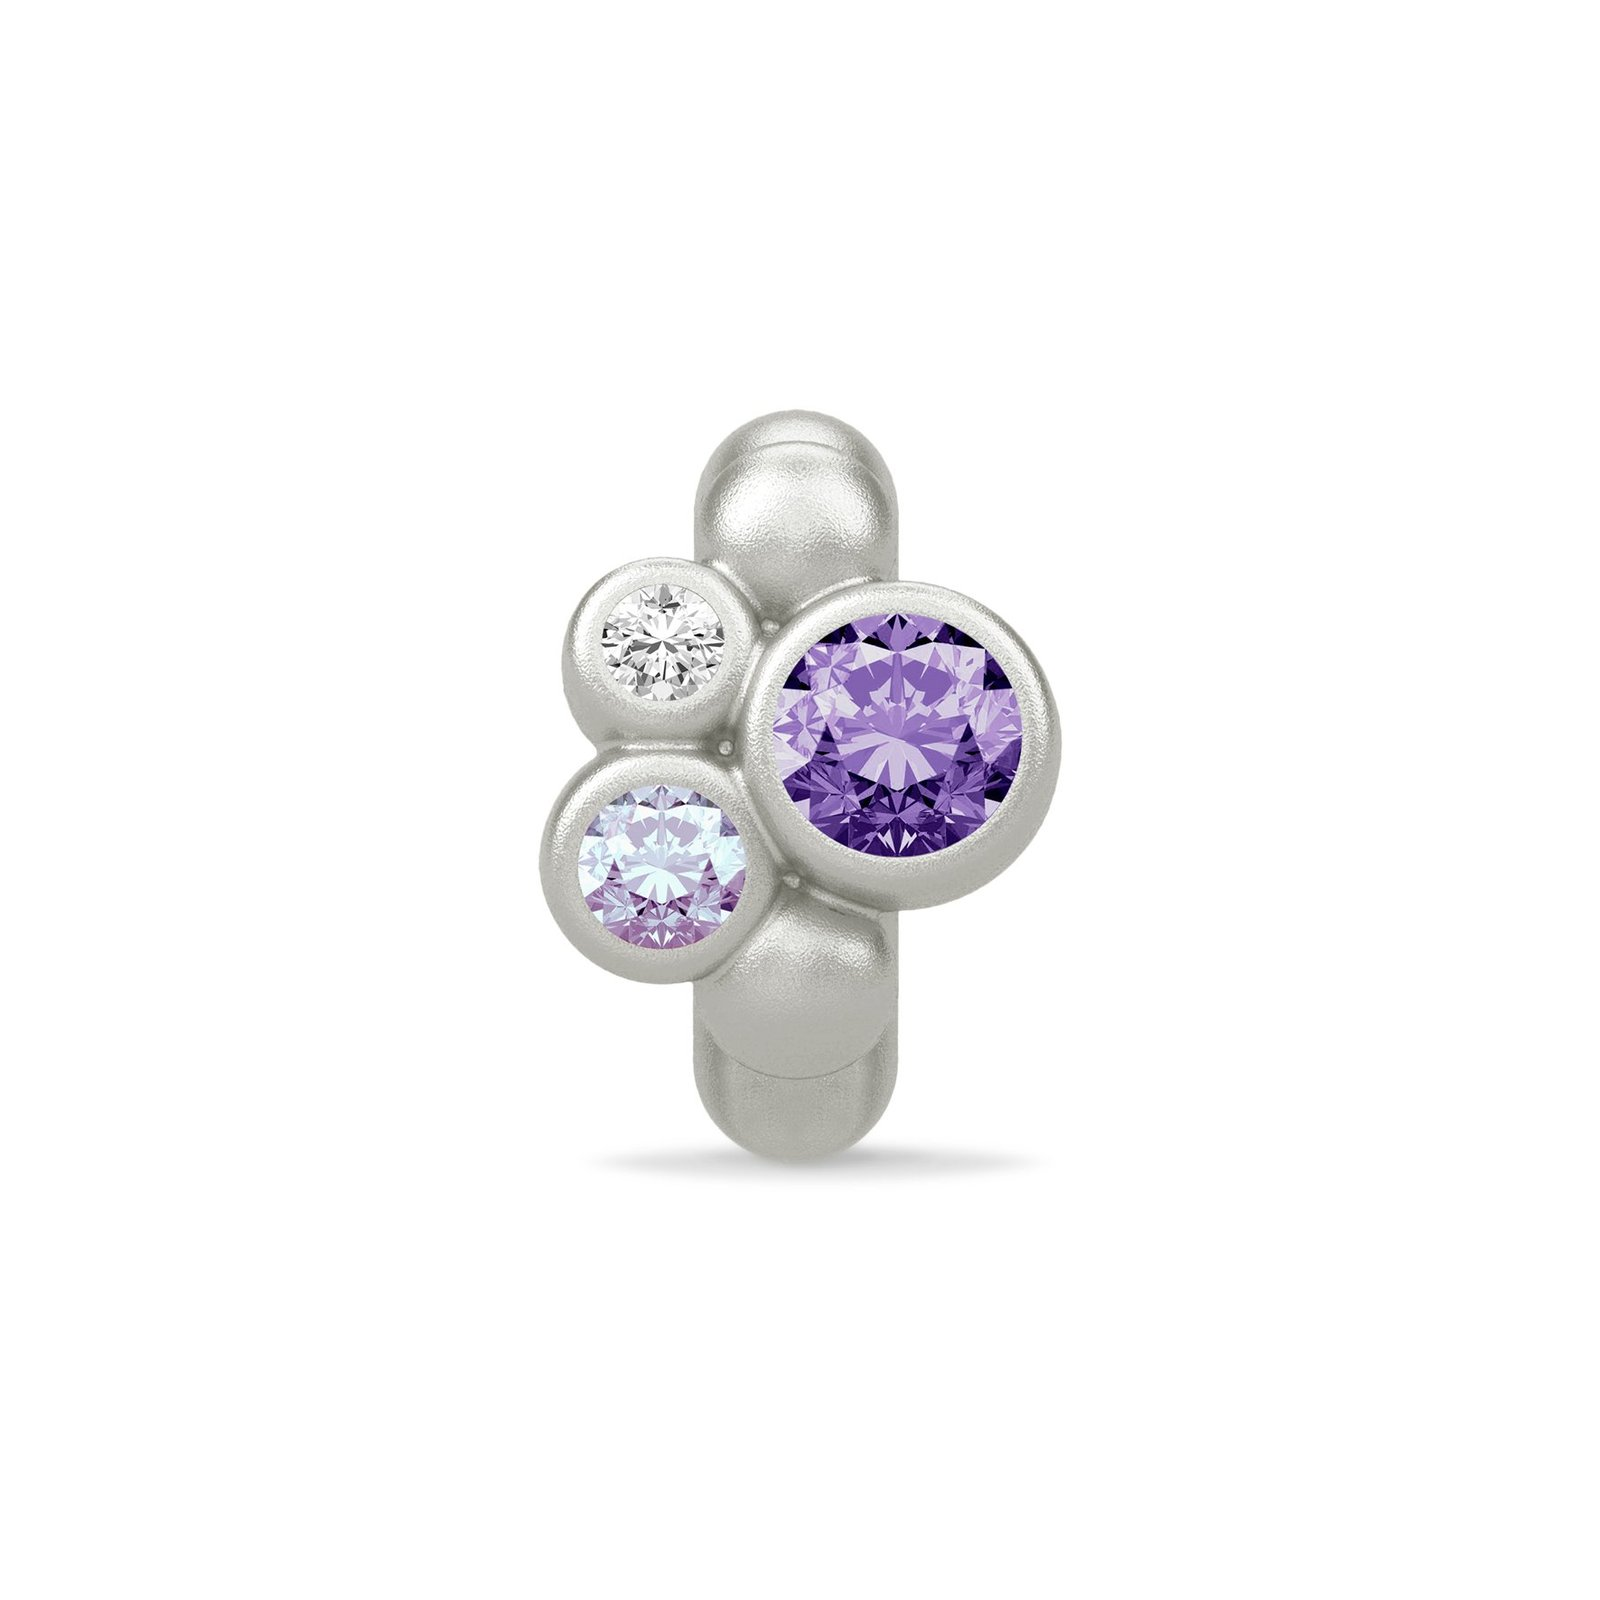 Endless Jewelry Sterling Silver Purple Sweet Dreams Cubic Zirconia Charm 41307-1